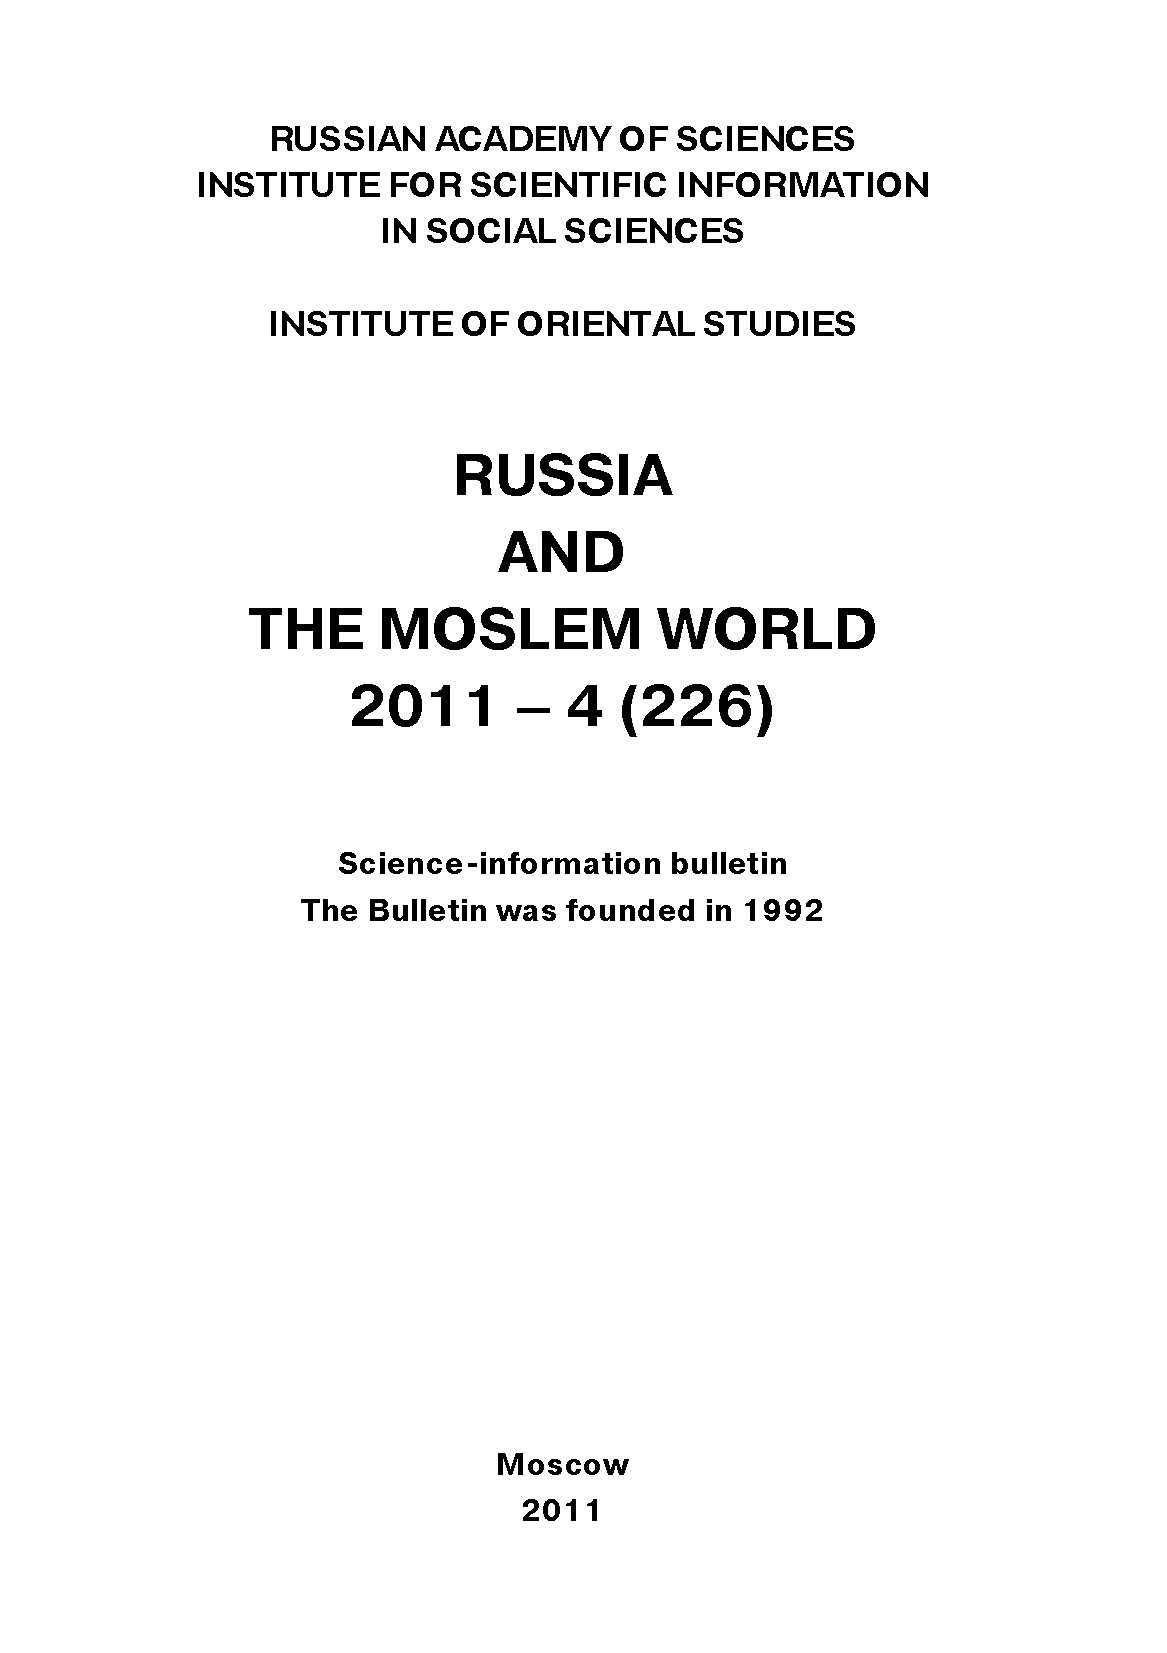 Сборник статей Russia and the Moslem World № 04 / 2011 сборник статей russia and the moslem world 04 2011